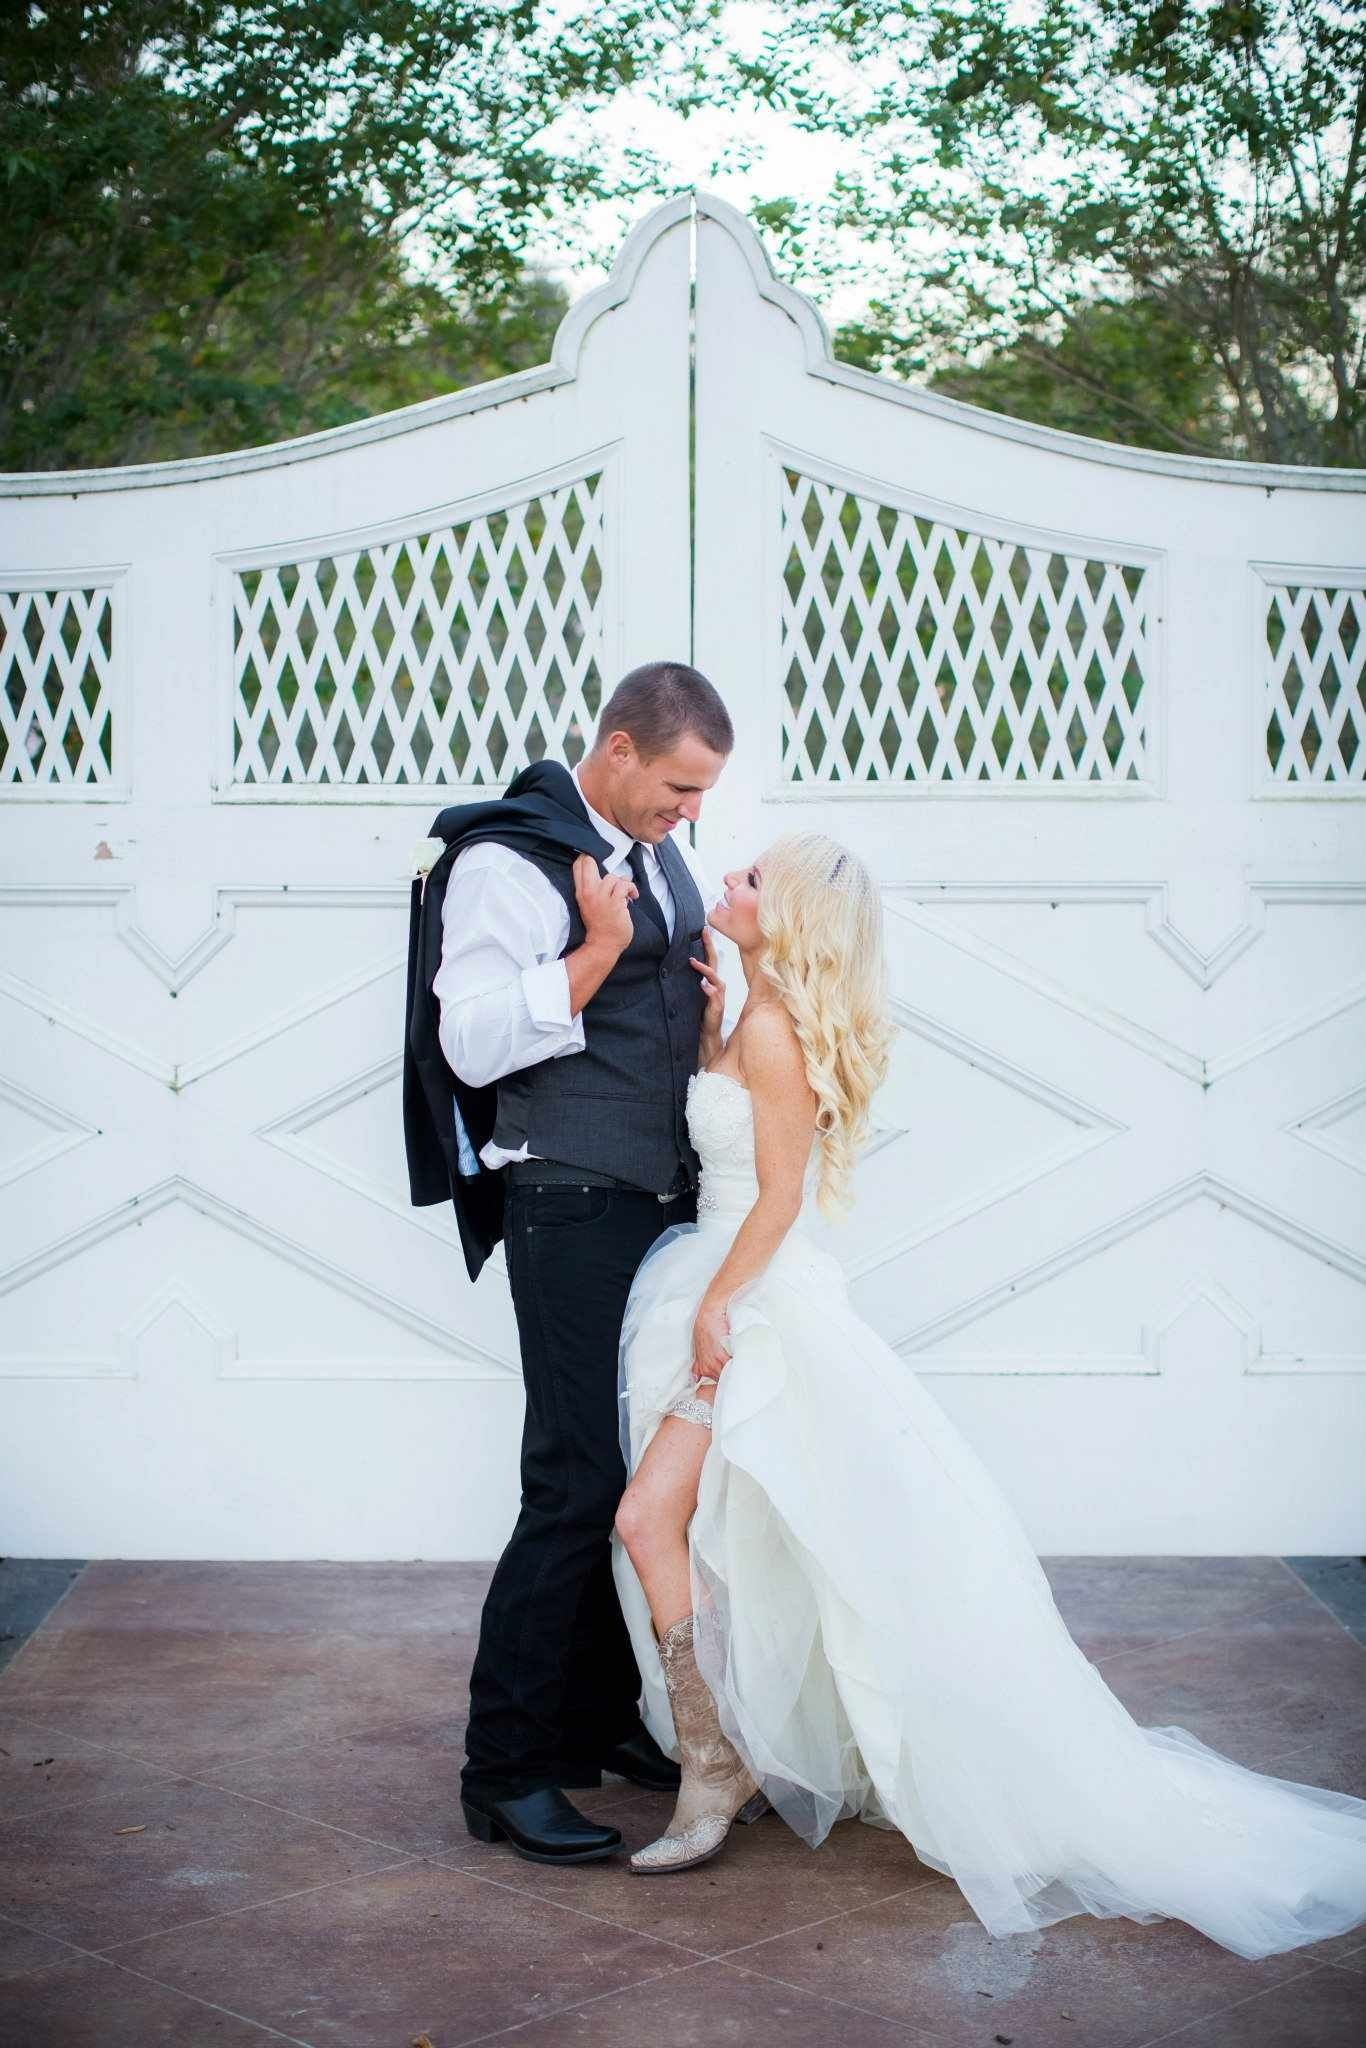 Wedding dresses with cowgirl boots  oldgringo sexyboots  Wedding Photos  Pinterest  Cowboy boots